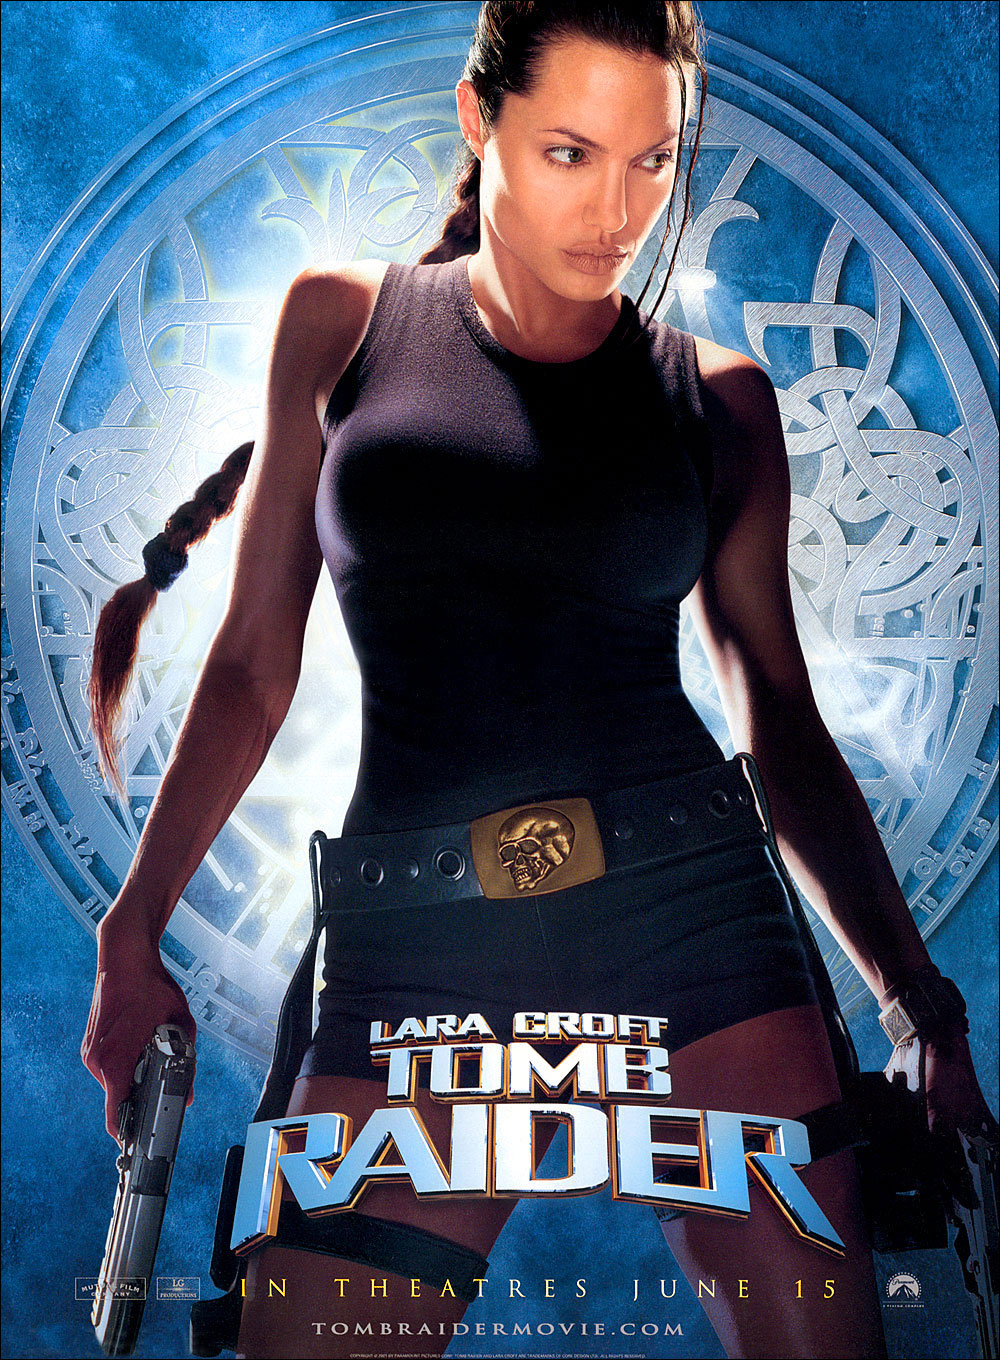 22 tombraider movie